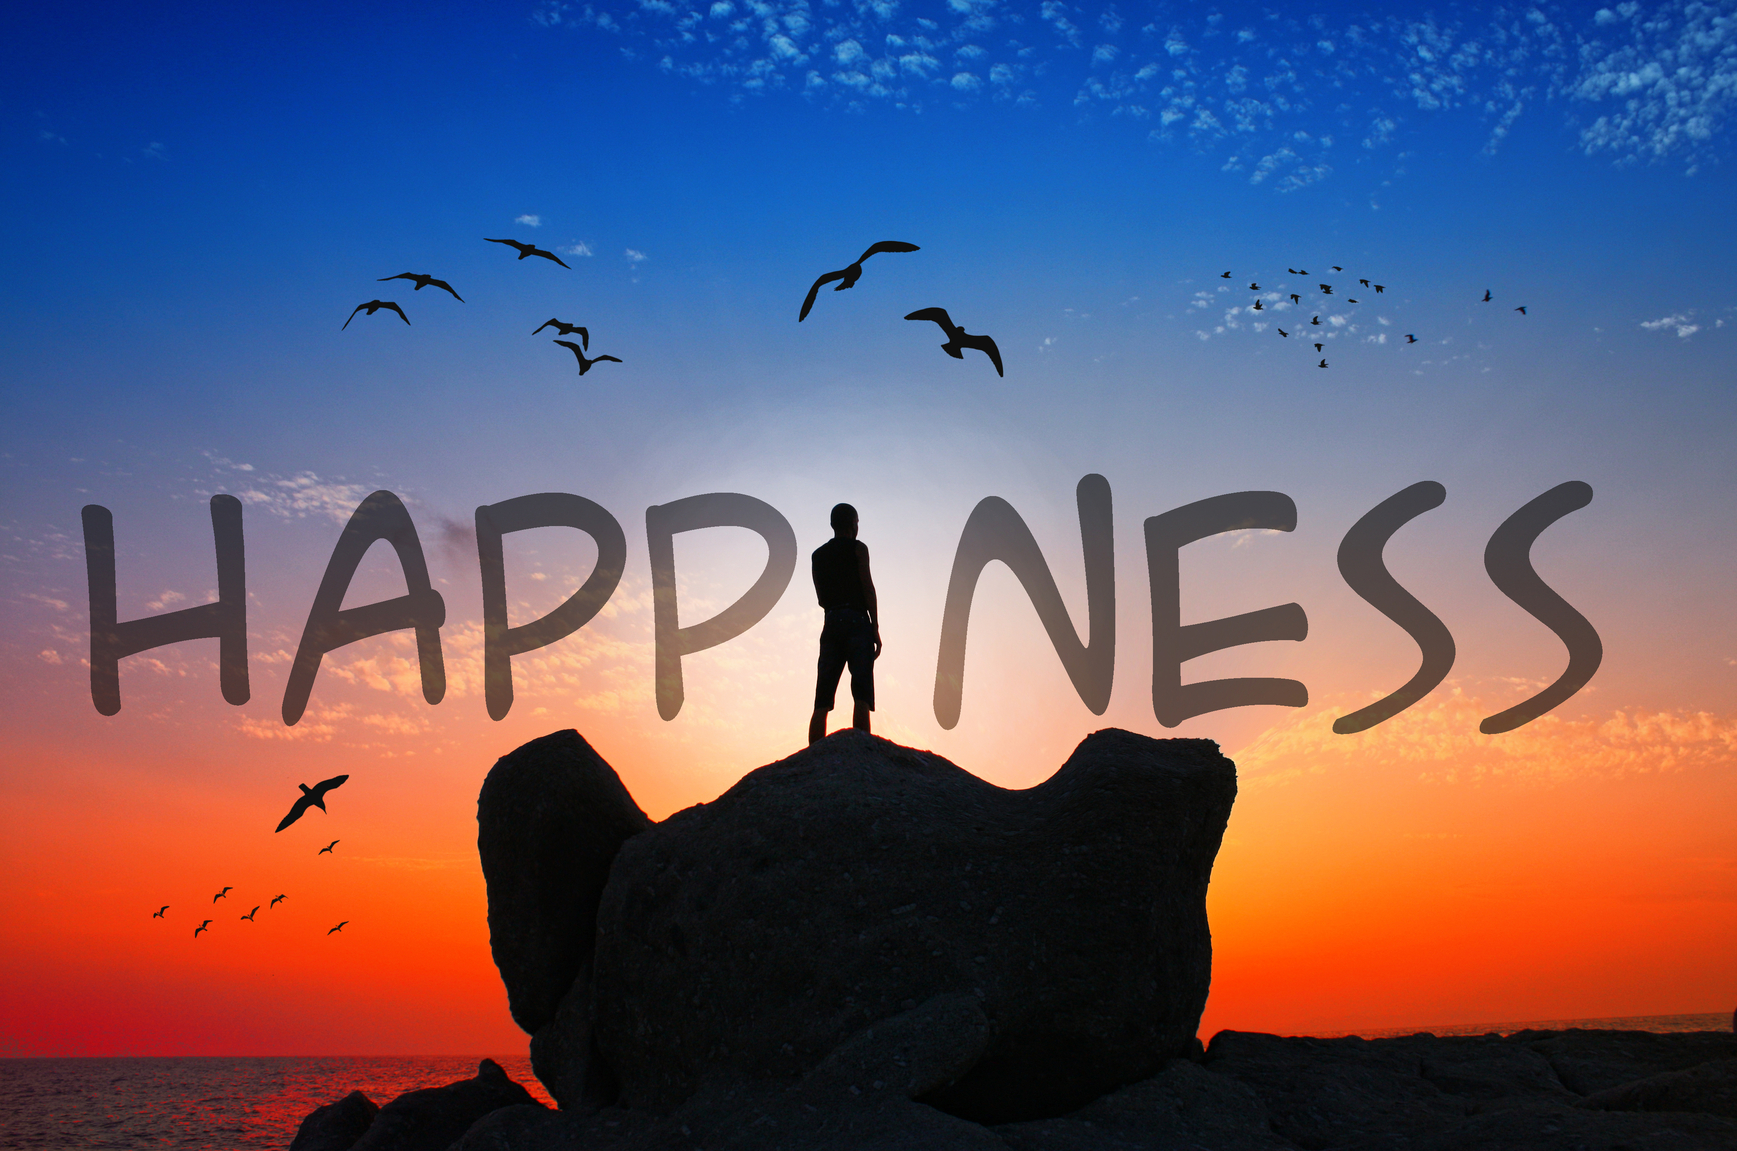 High Resolution Wallpaper | Happiness! 1737x1151 px